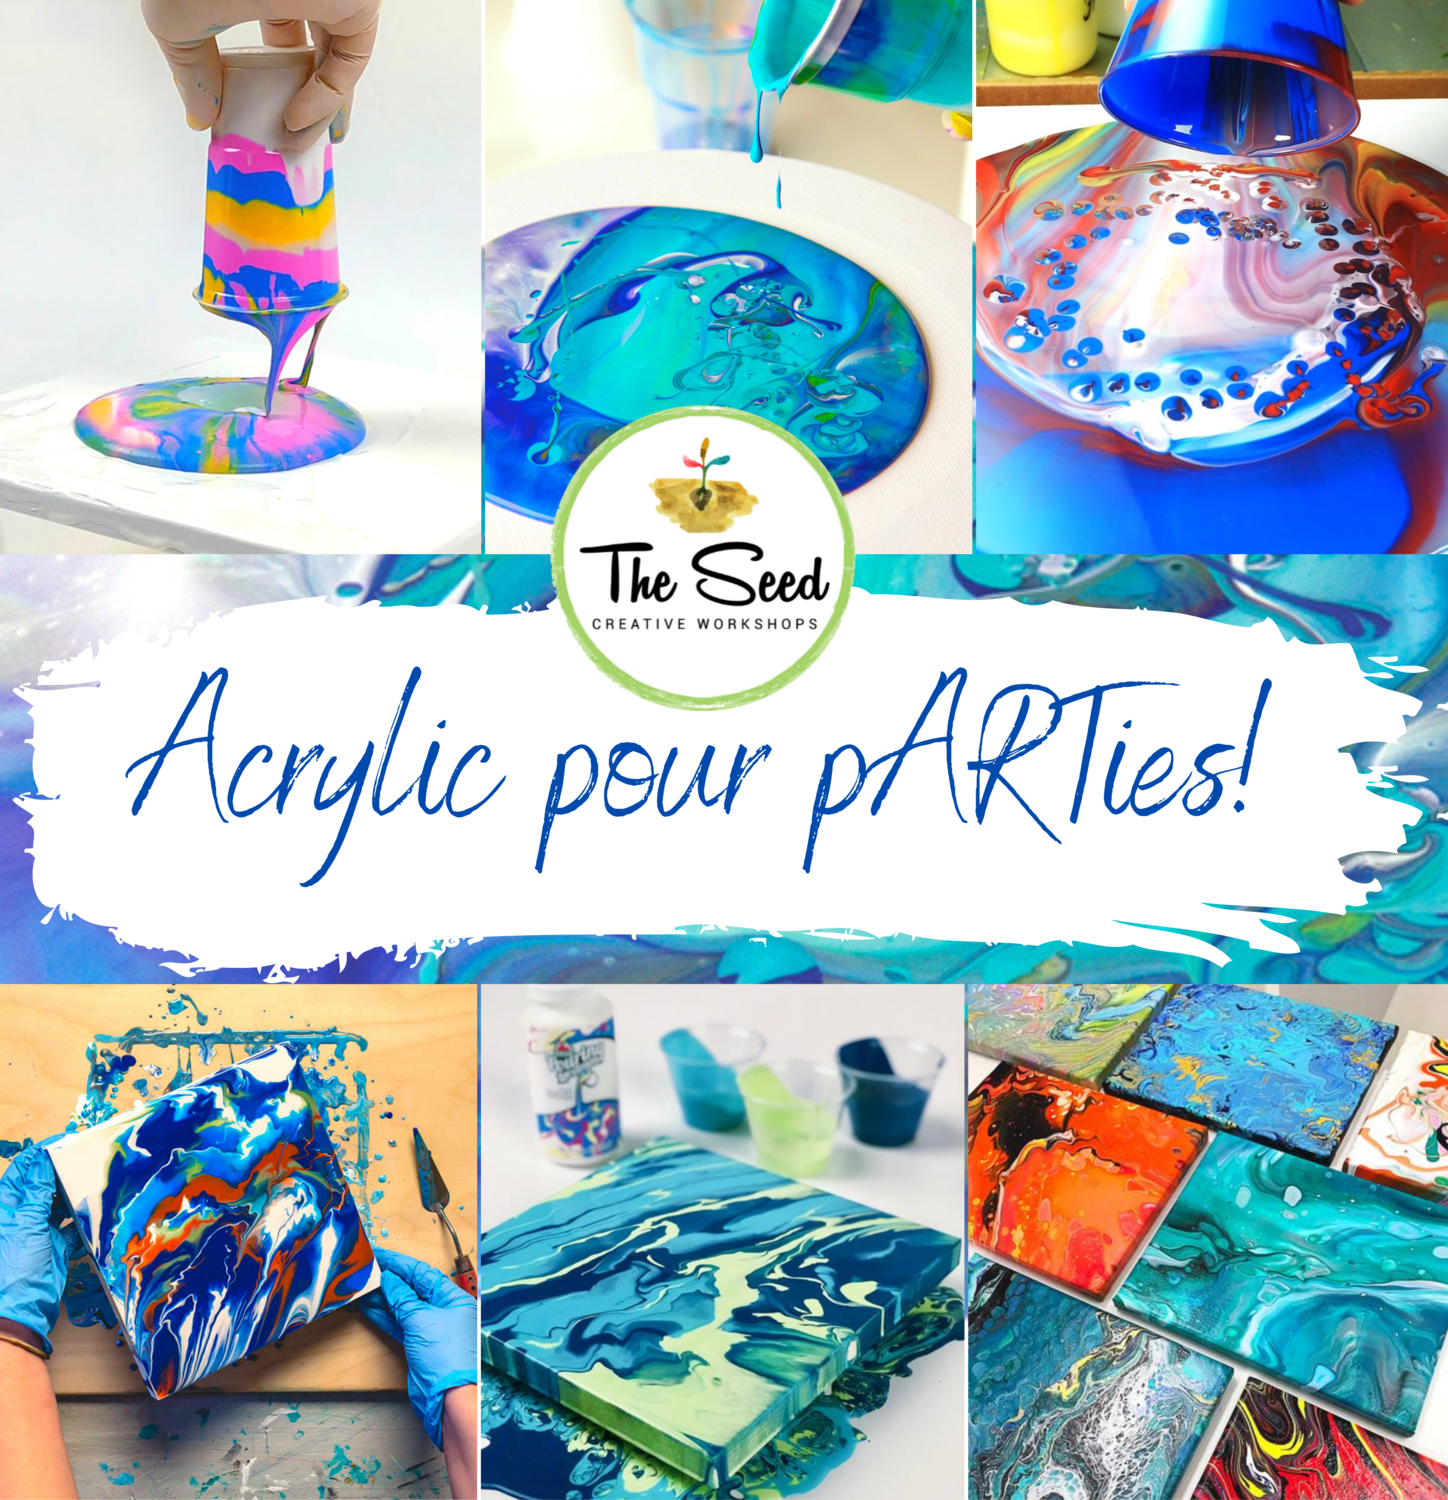 Acrylic pouring workshop - Saturday 21 November 2-4pm